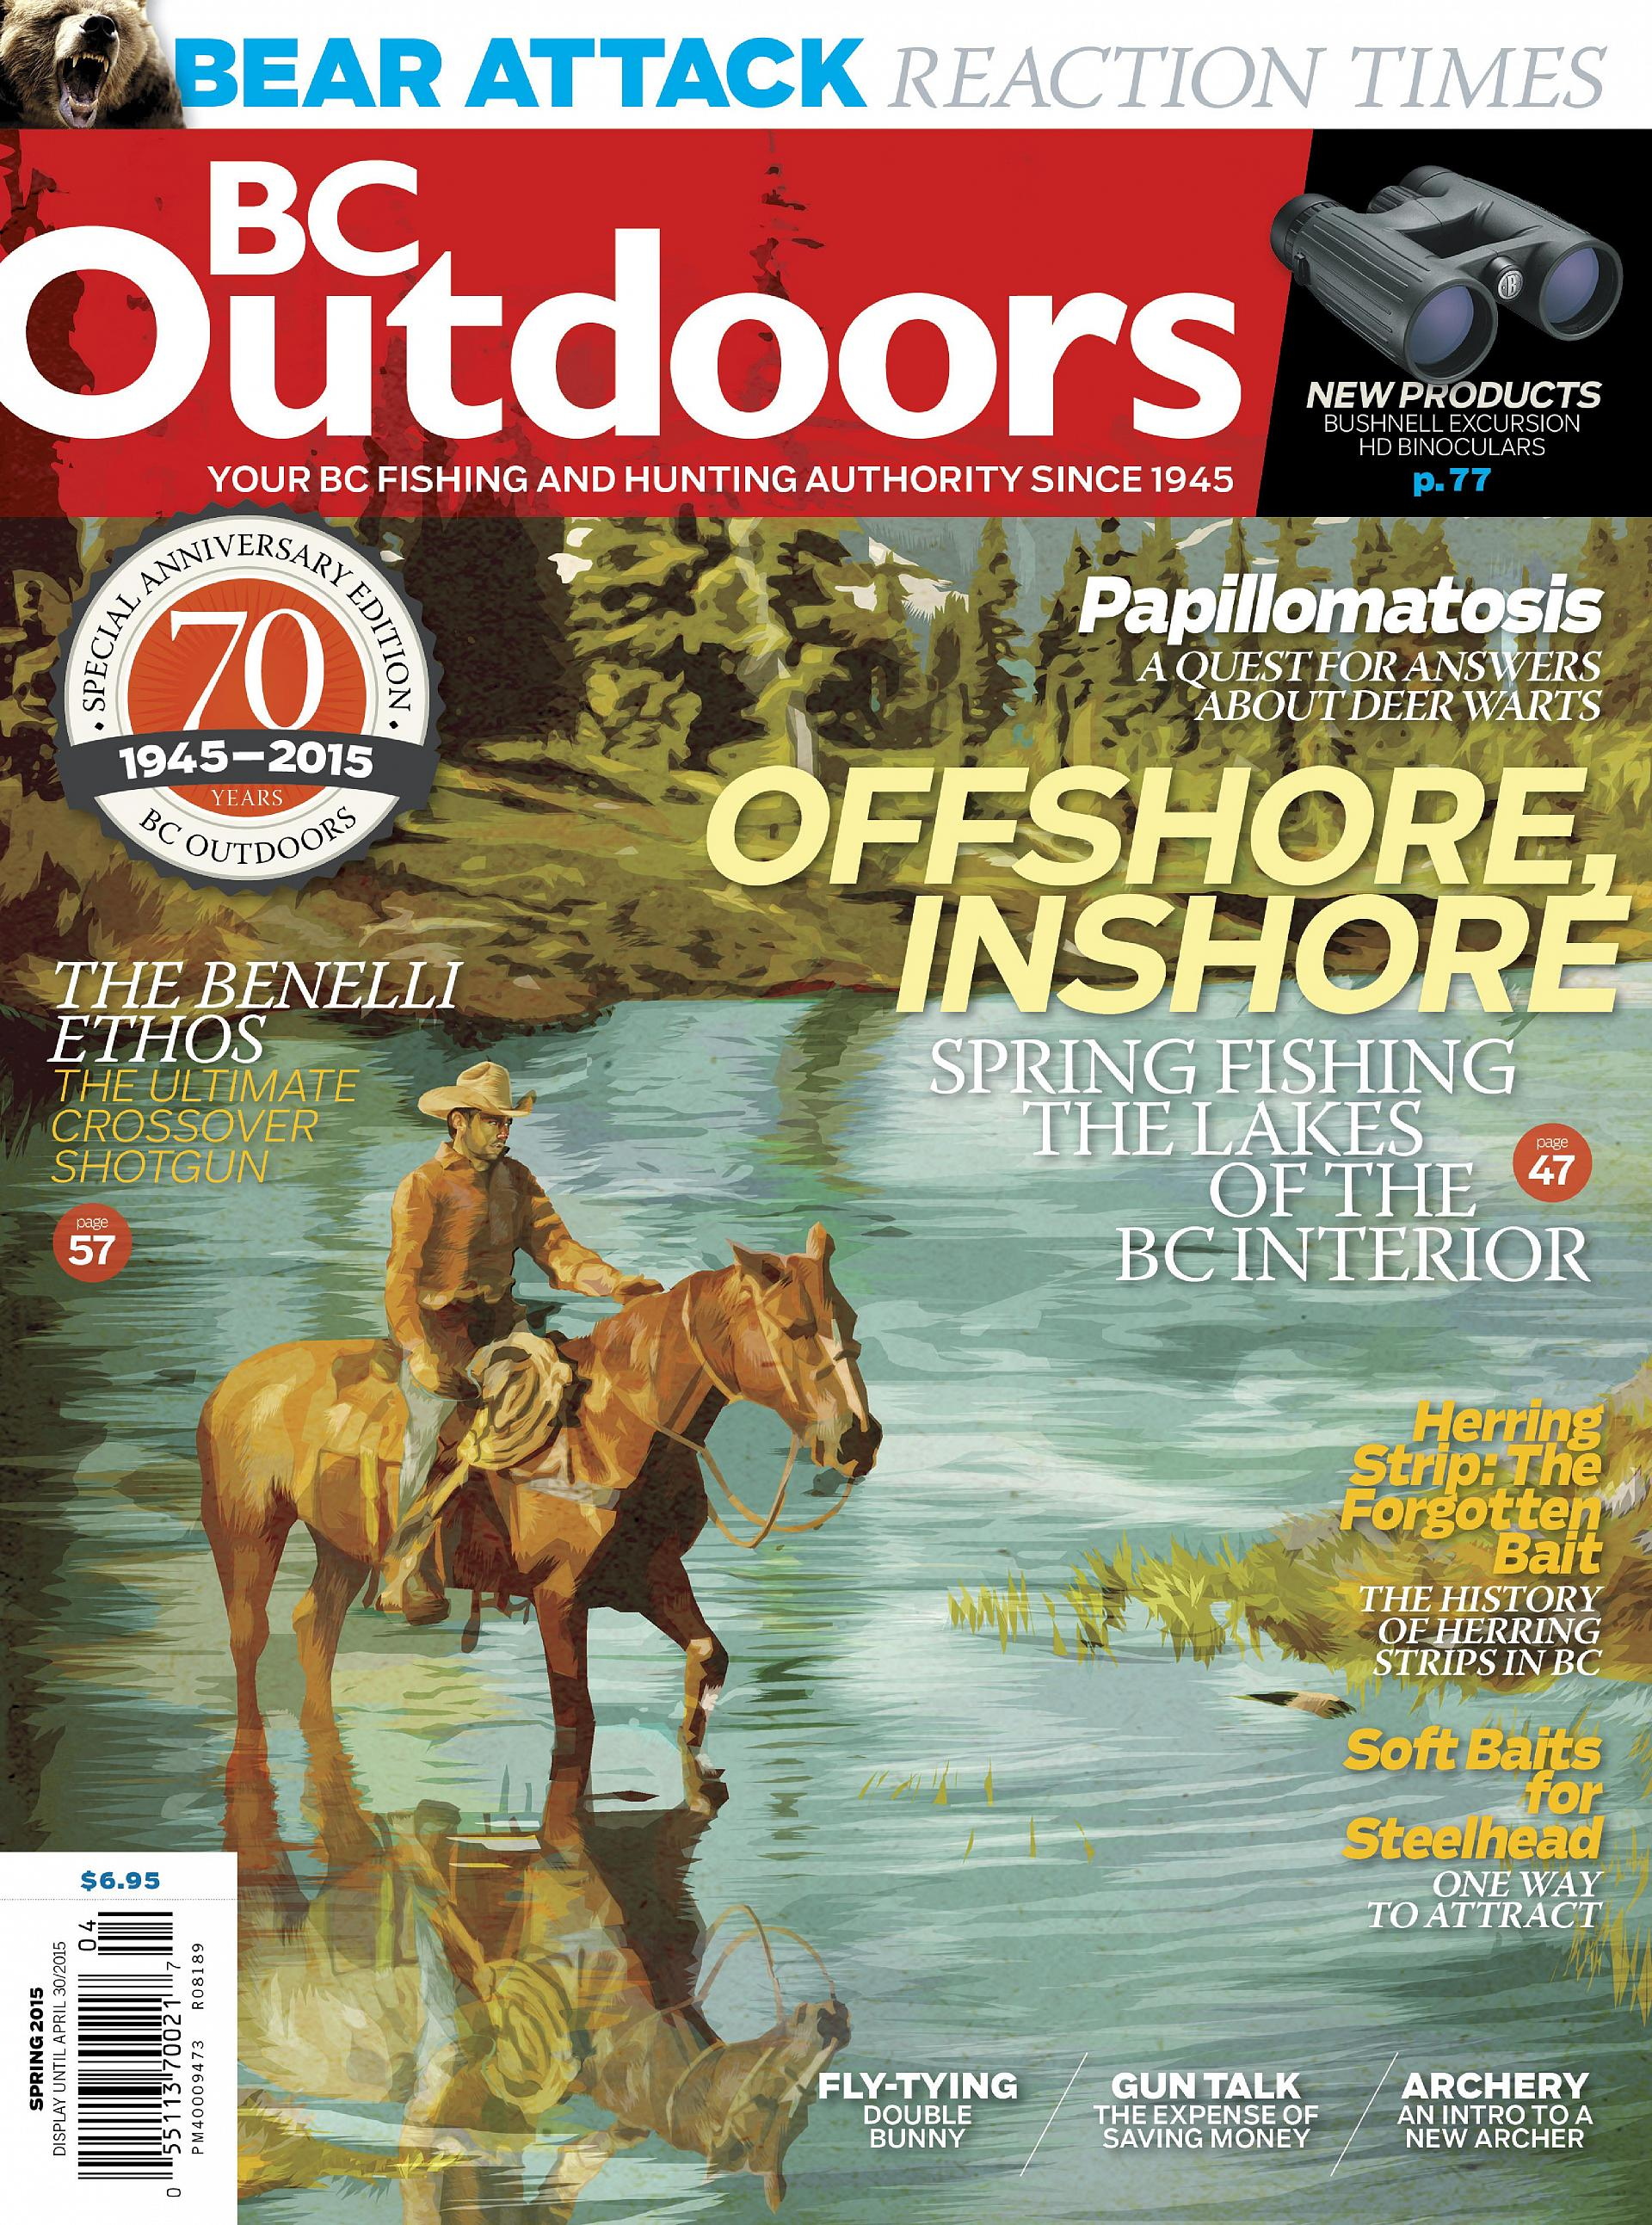 BC Outdoors Spring 2015 magazine cover